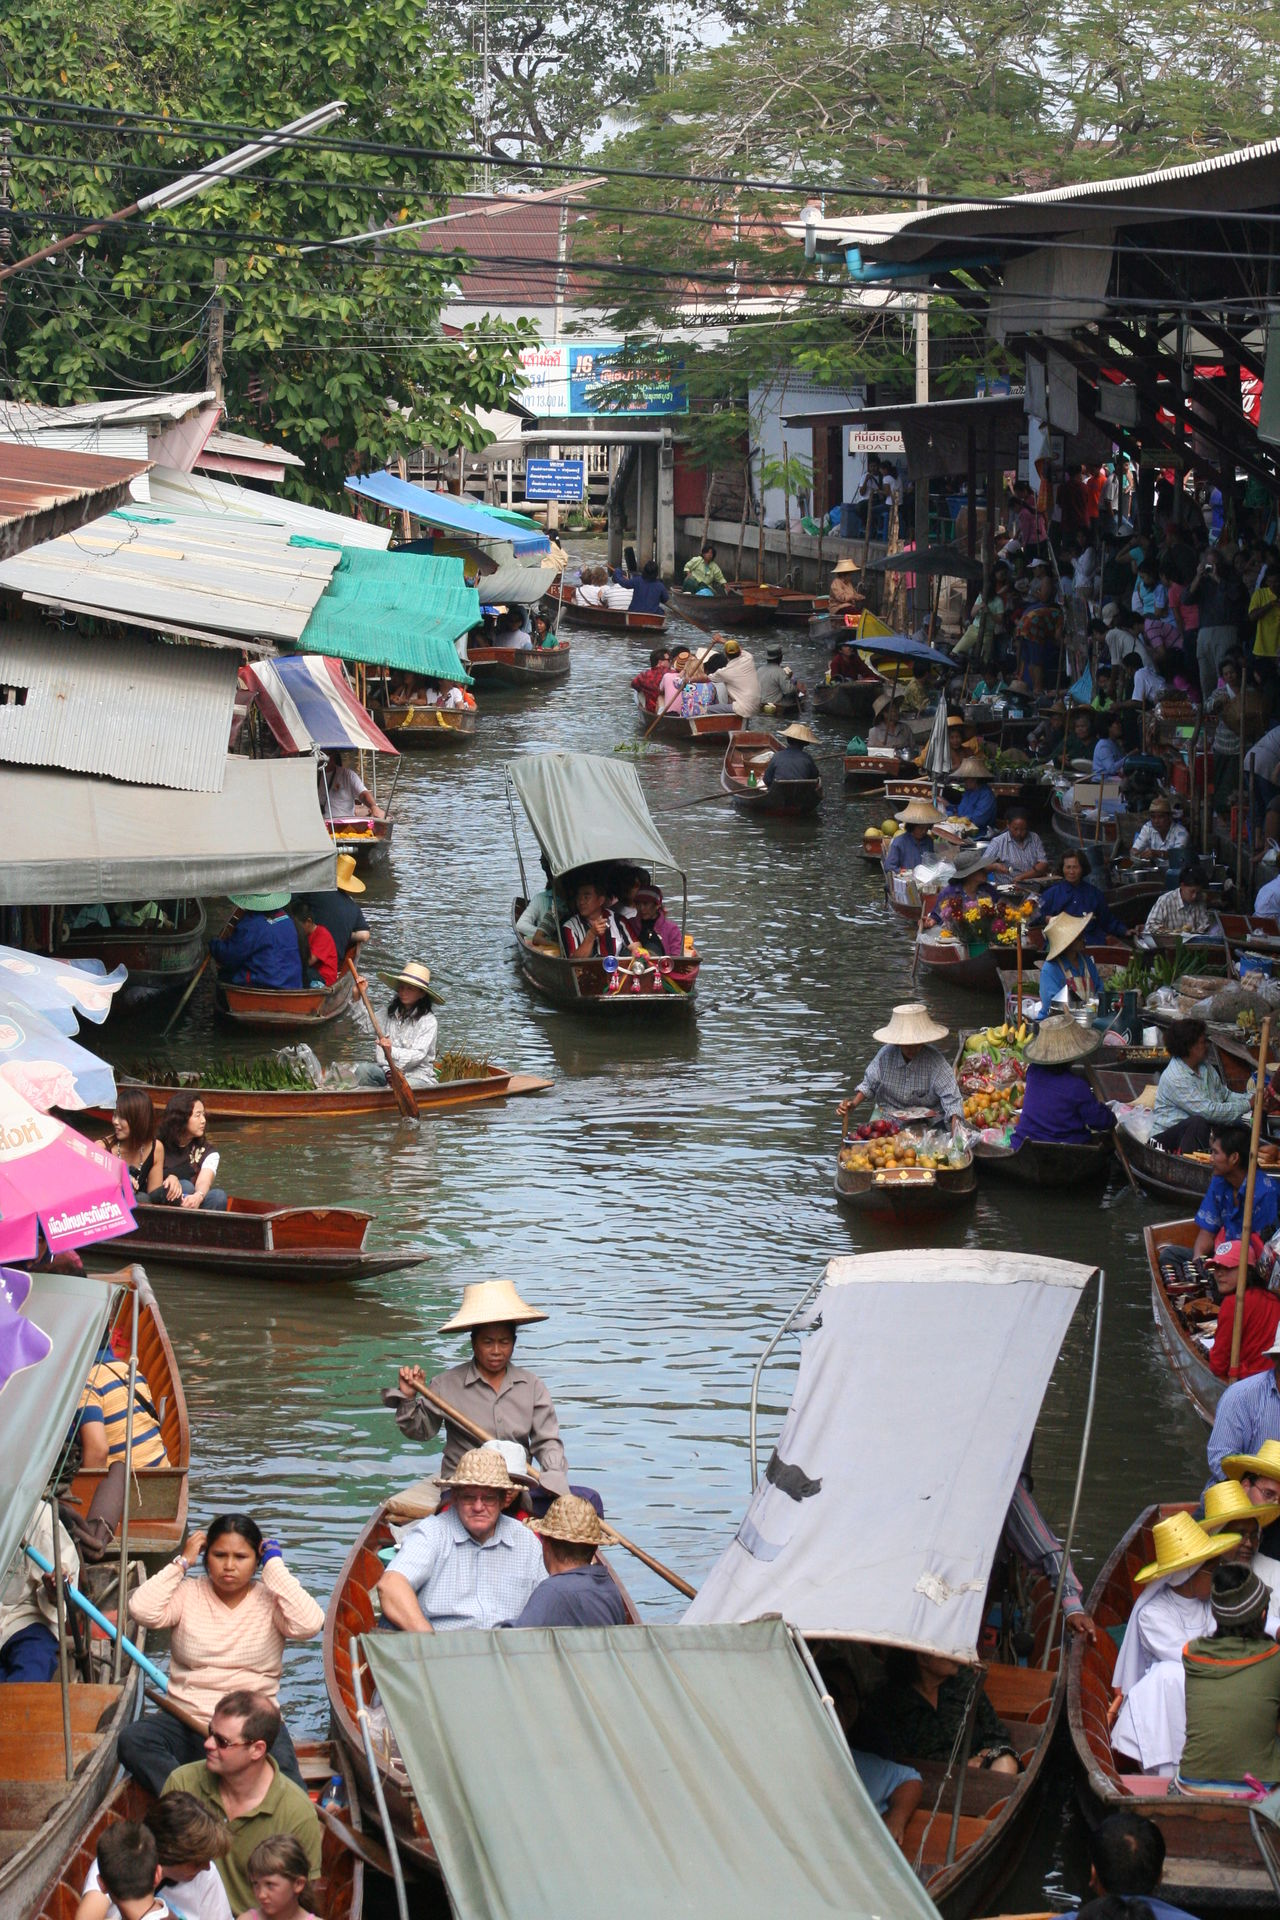 Abundance Boat Canal City Life Crowded Day Elevated View Floating Market Lifestyles Mode Of Transport Outdoors Thailand Tourism Tourists Town Travel Destinations